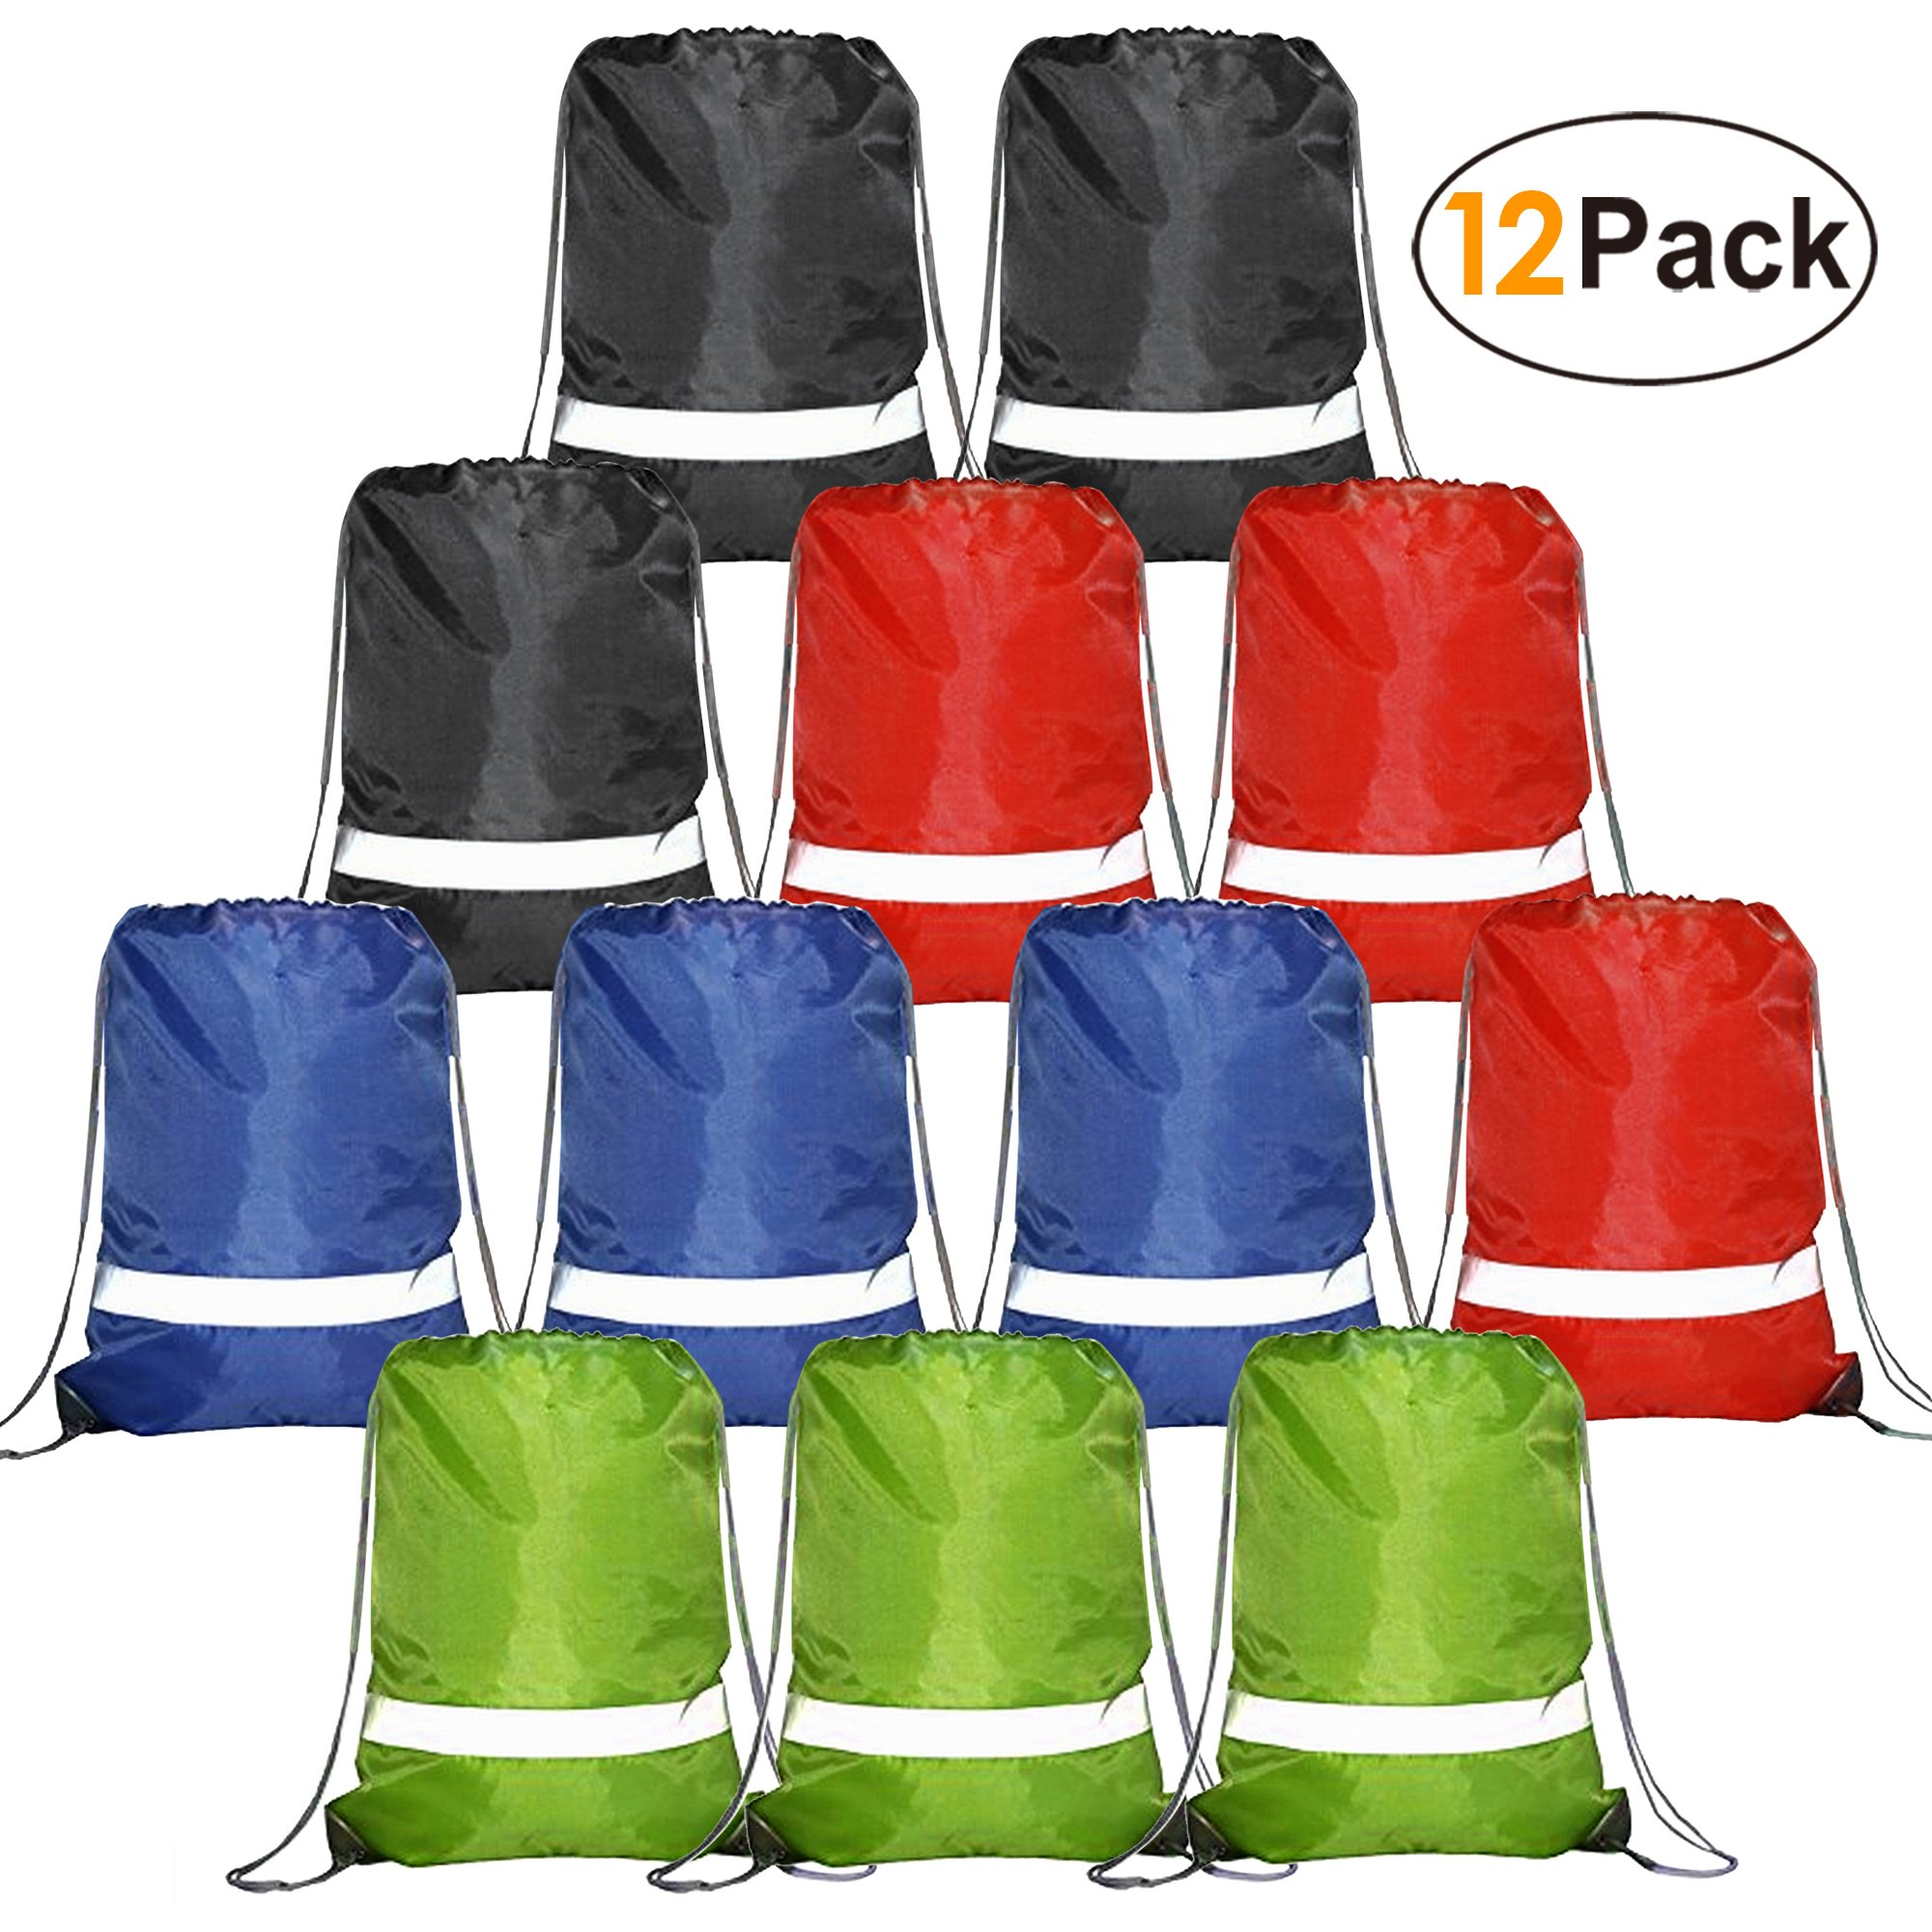 Drawstring Backpack Bags Reflective Bulk Pack, Promotional Sport Gym Sack Cinch Bags (12 Pack Mix Colors)